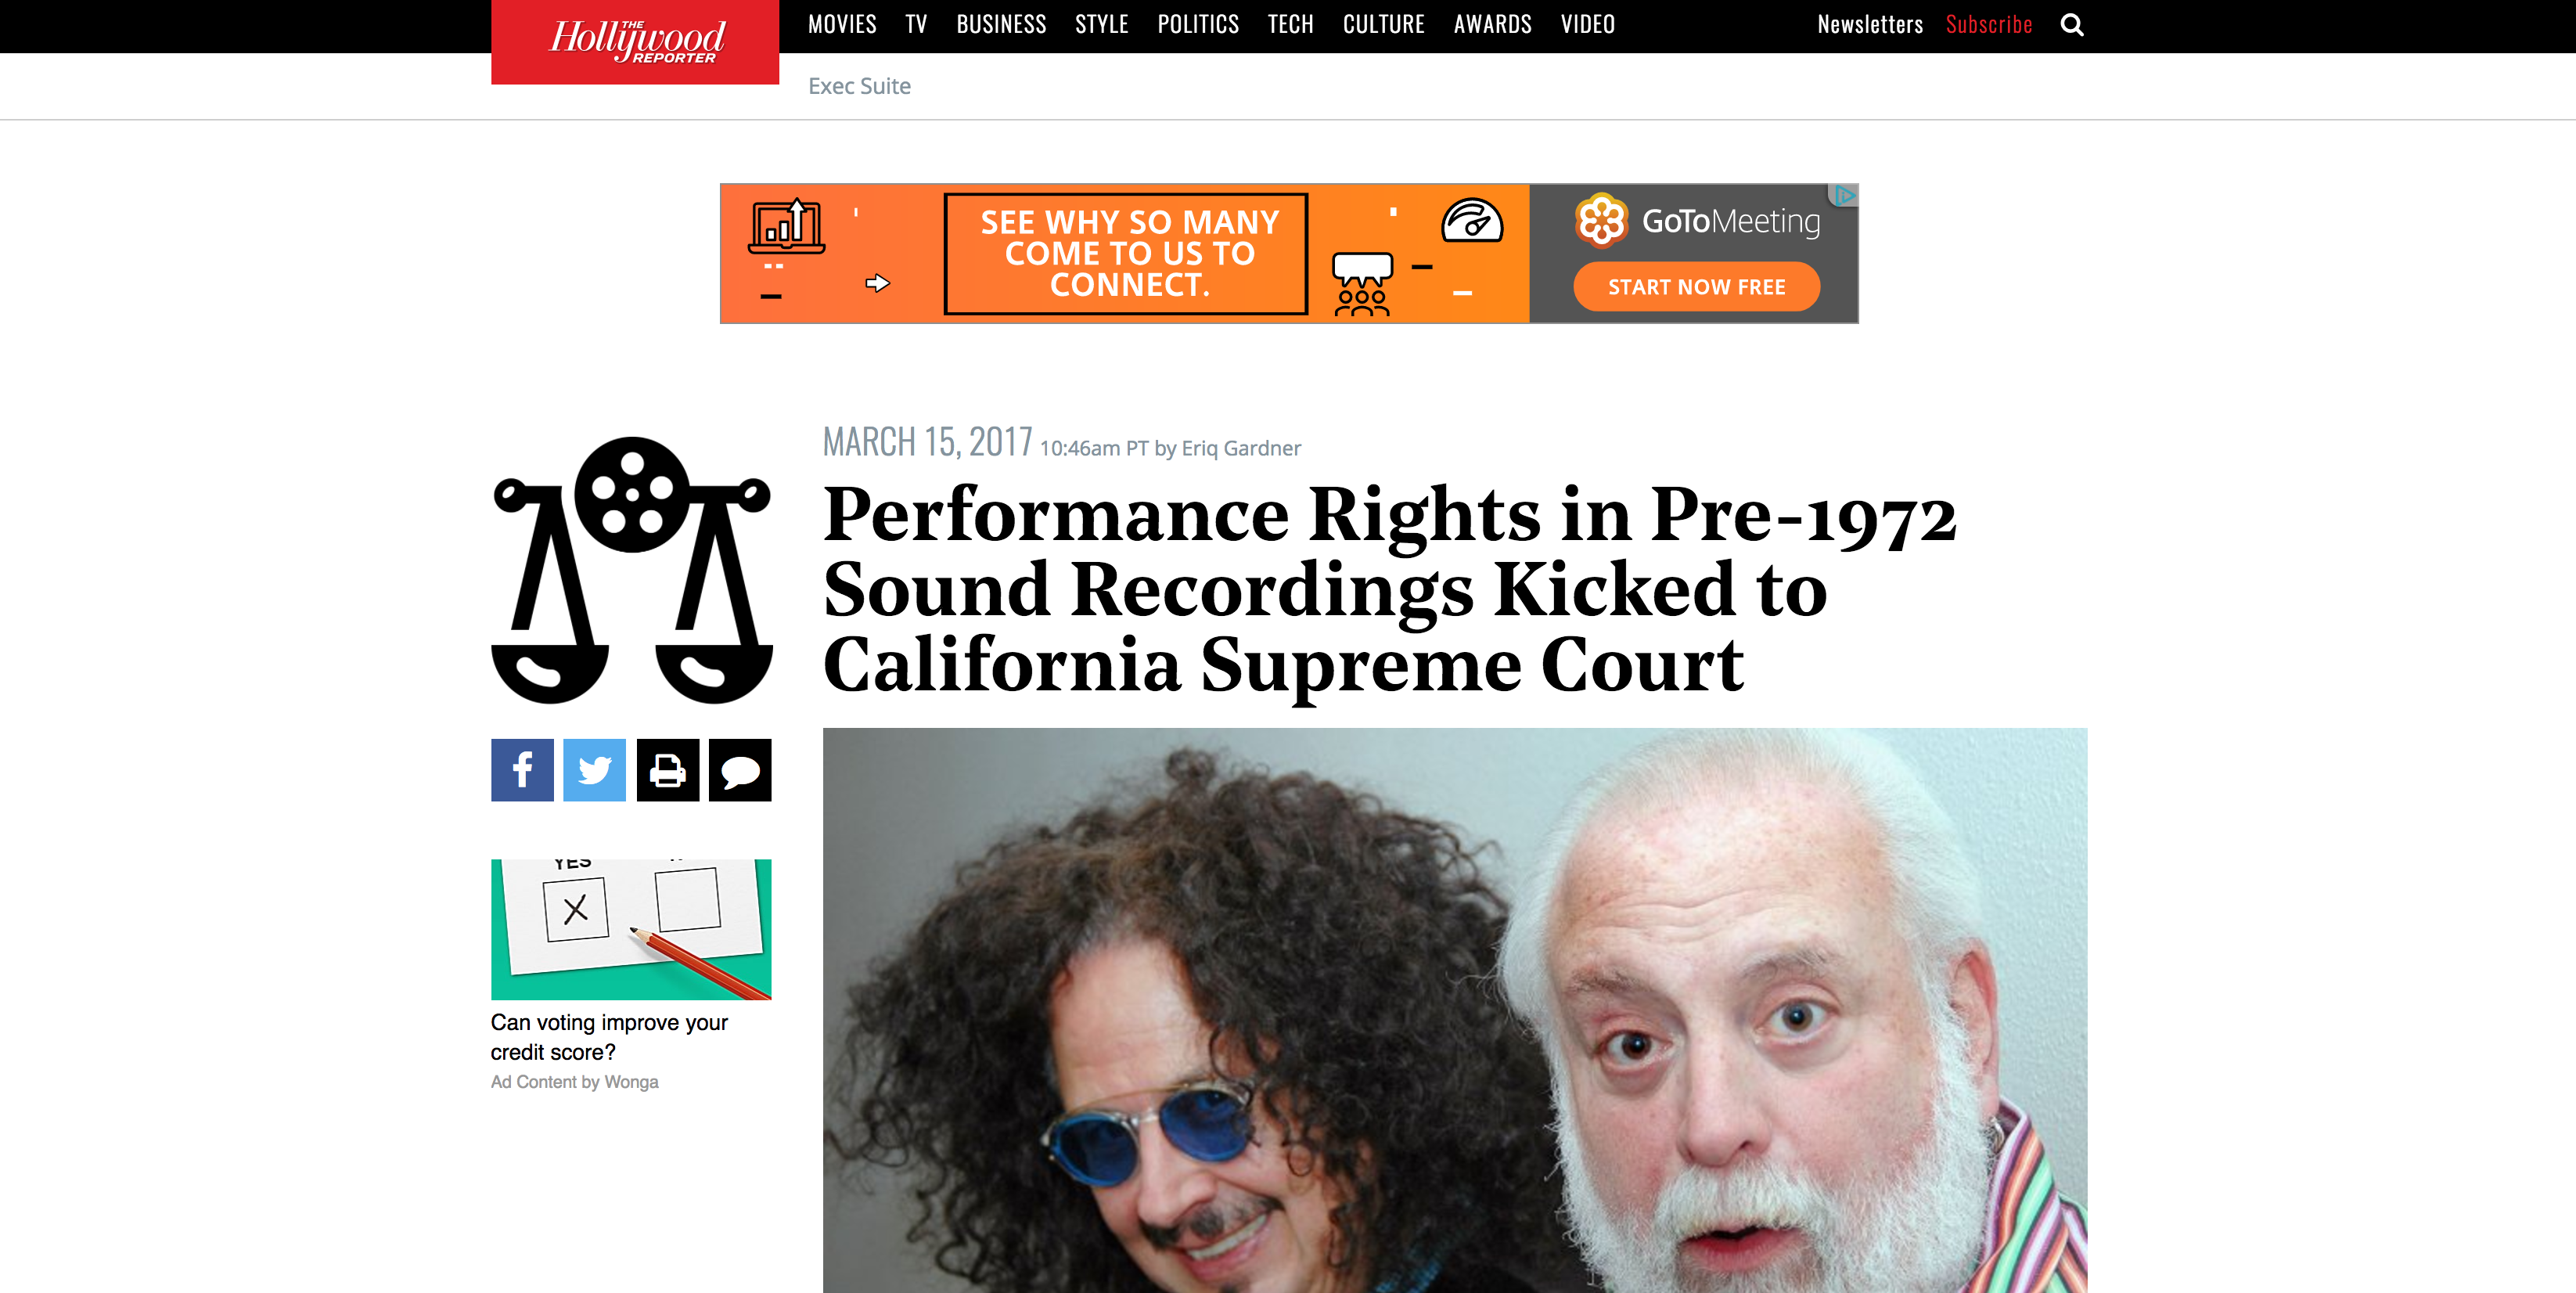 Fairness Rocks News Performance Rights in Pre-1972 Sound Recordings Kicked to California Supreme Court